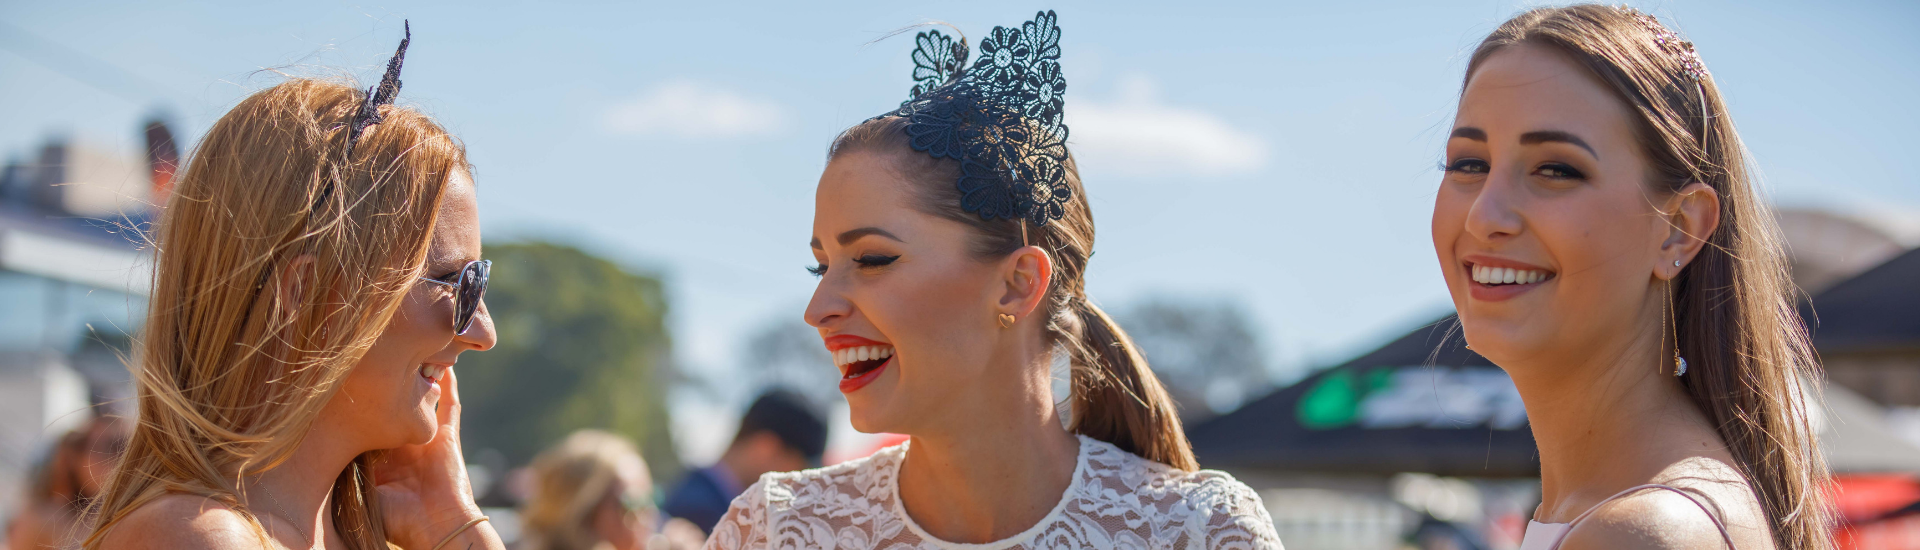 General Admission at the Brisbane Racing Carnival | Brisbane Racing Club